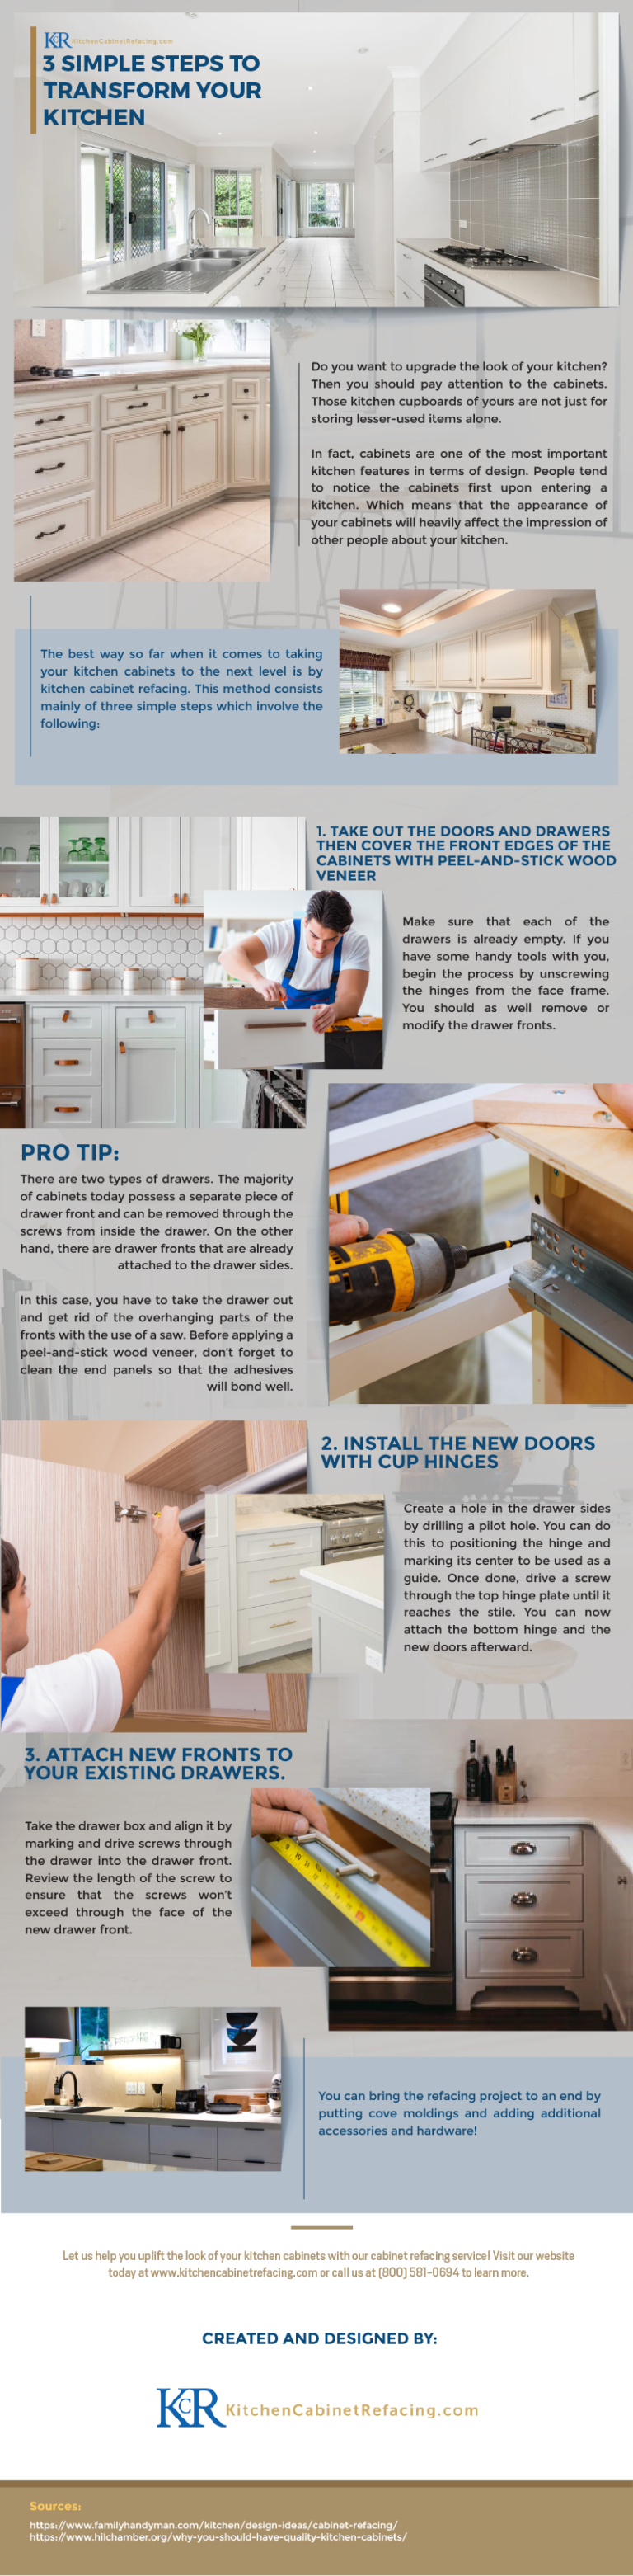 3-simple-steps-to-transform-your-kitchen-cabinets-infographic